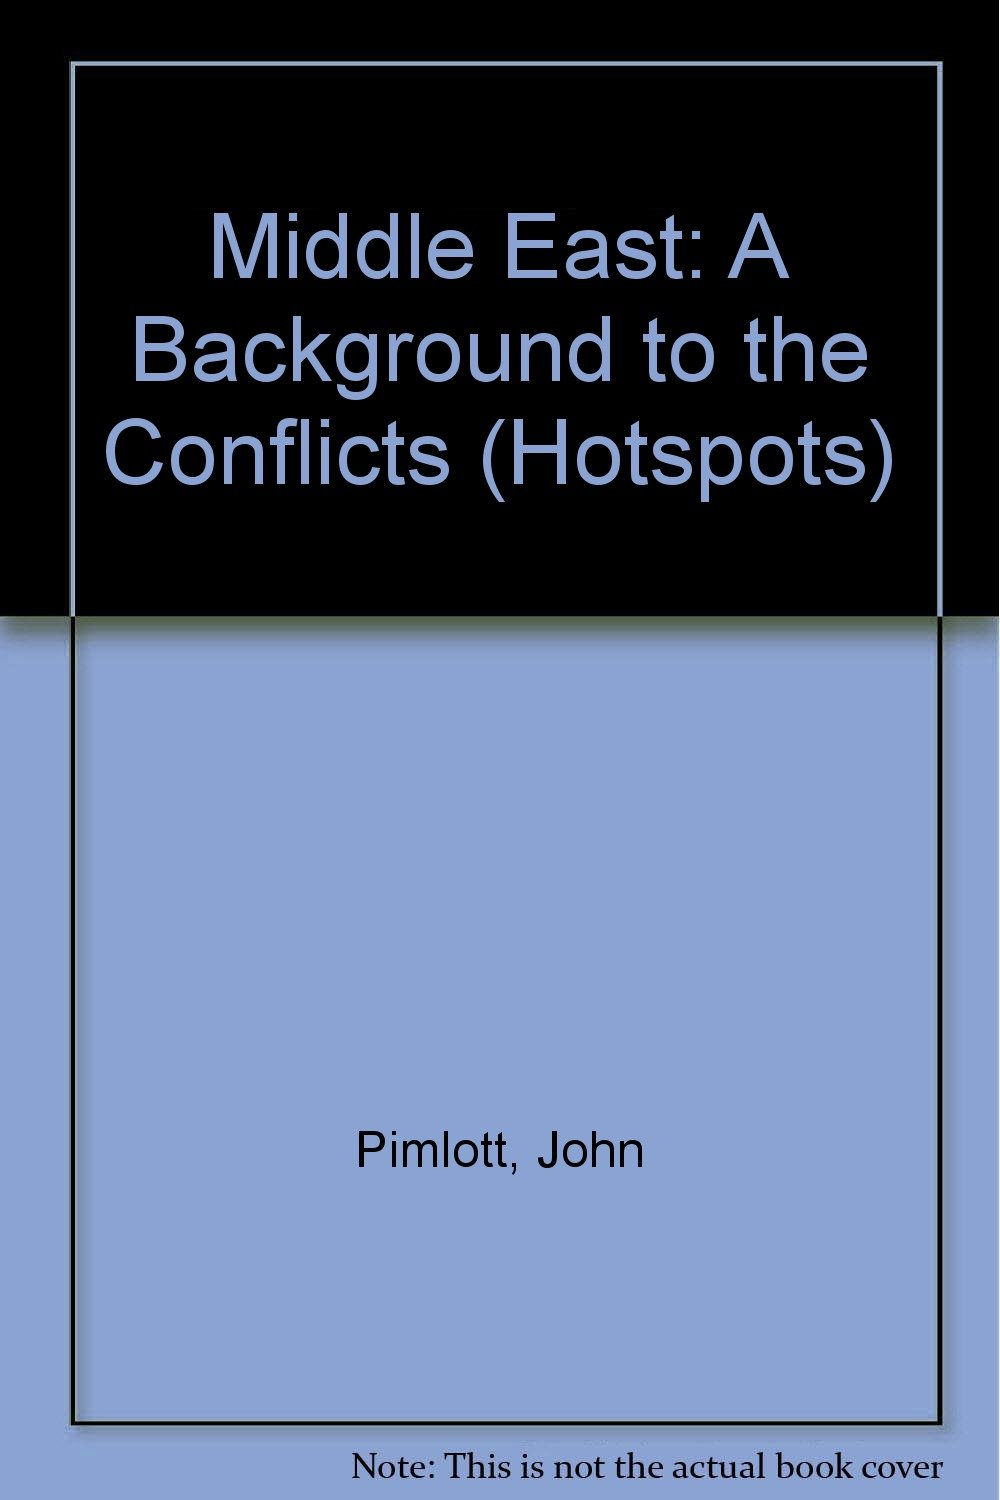 Middle East: A Background to the Conflicts (Hotspots)